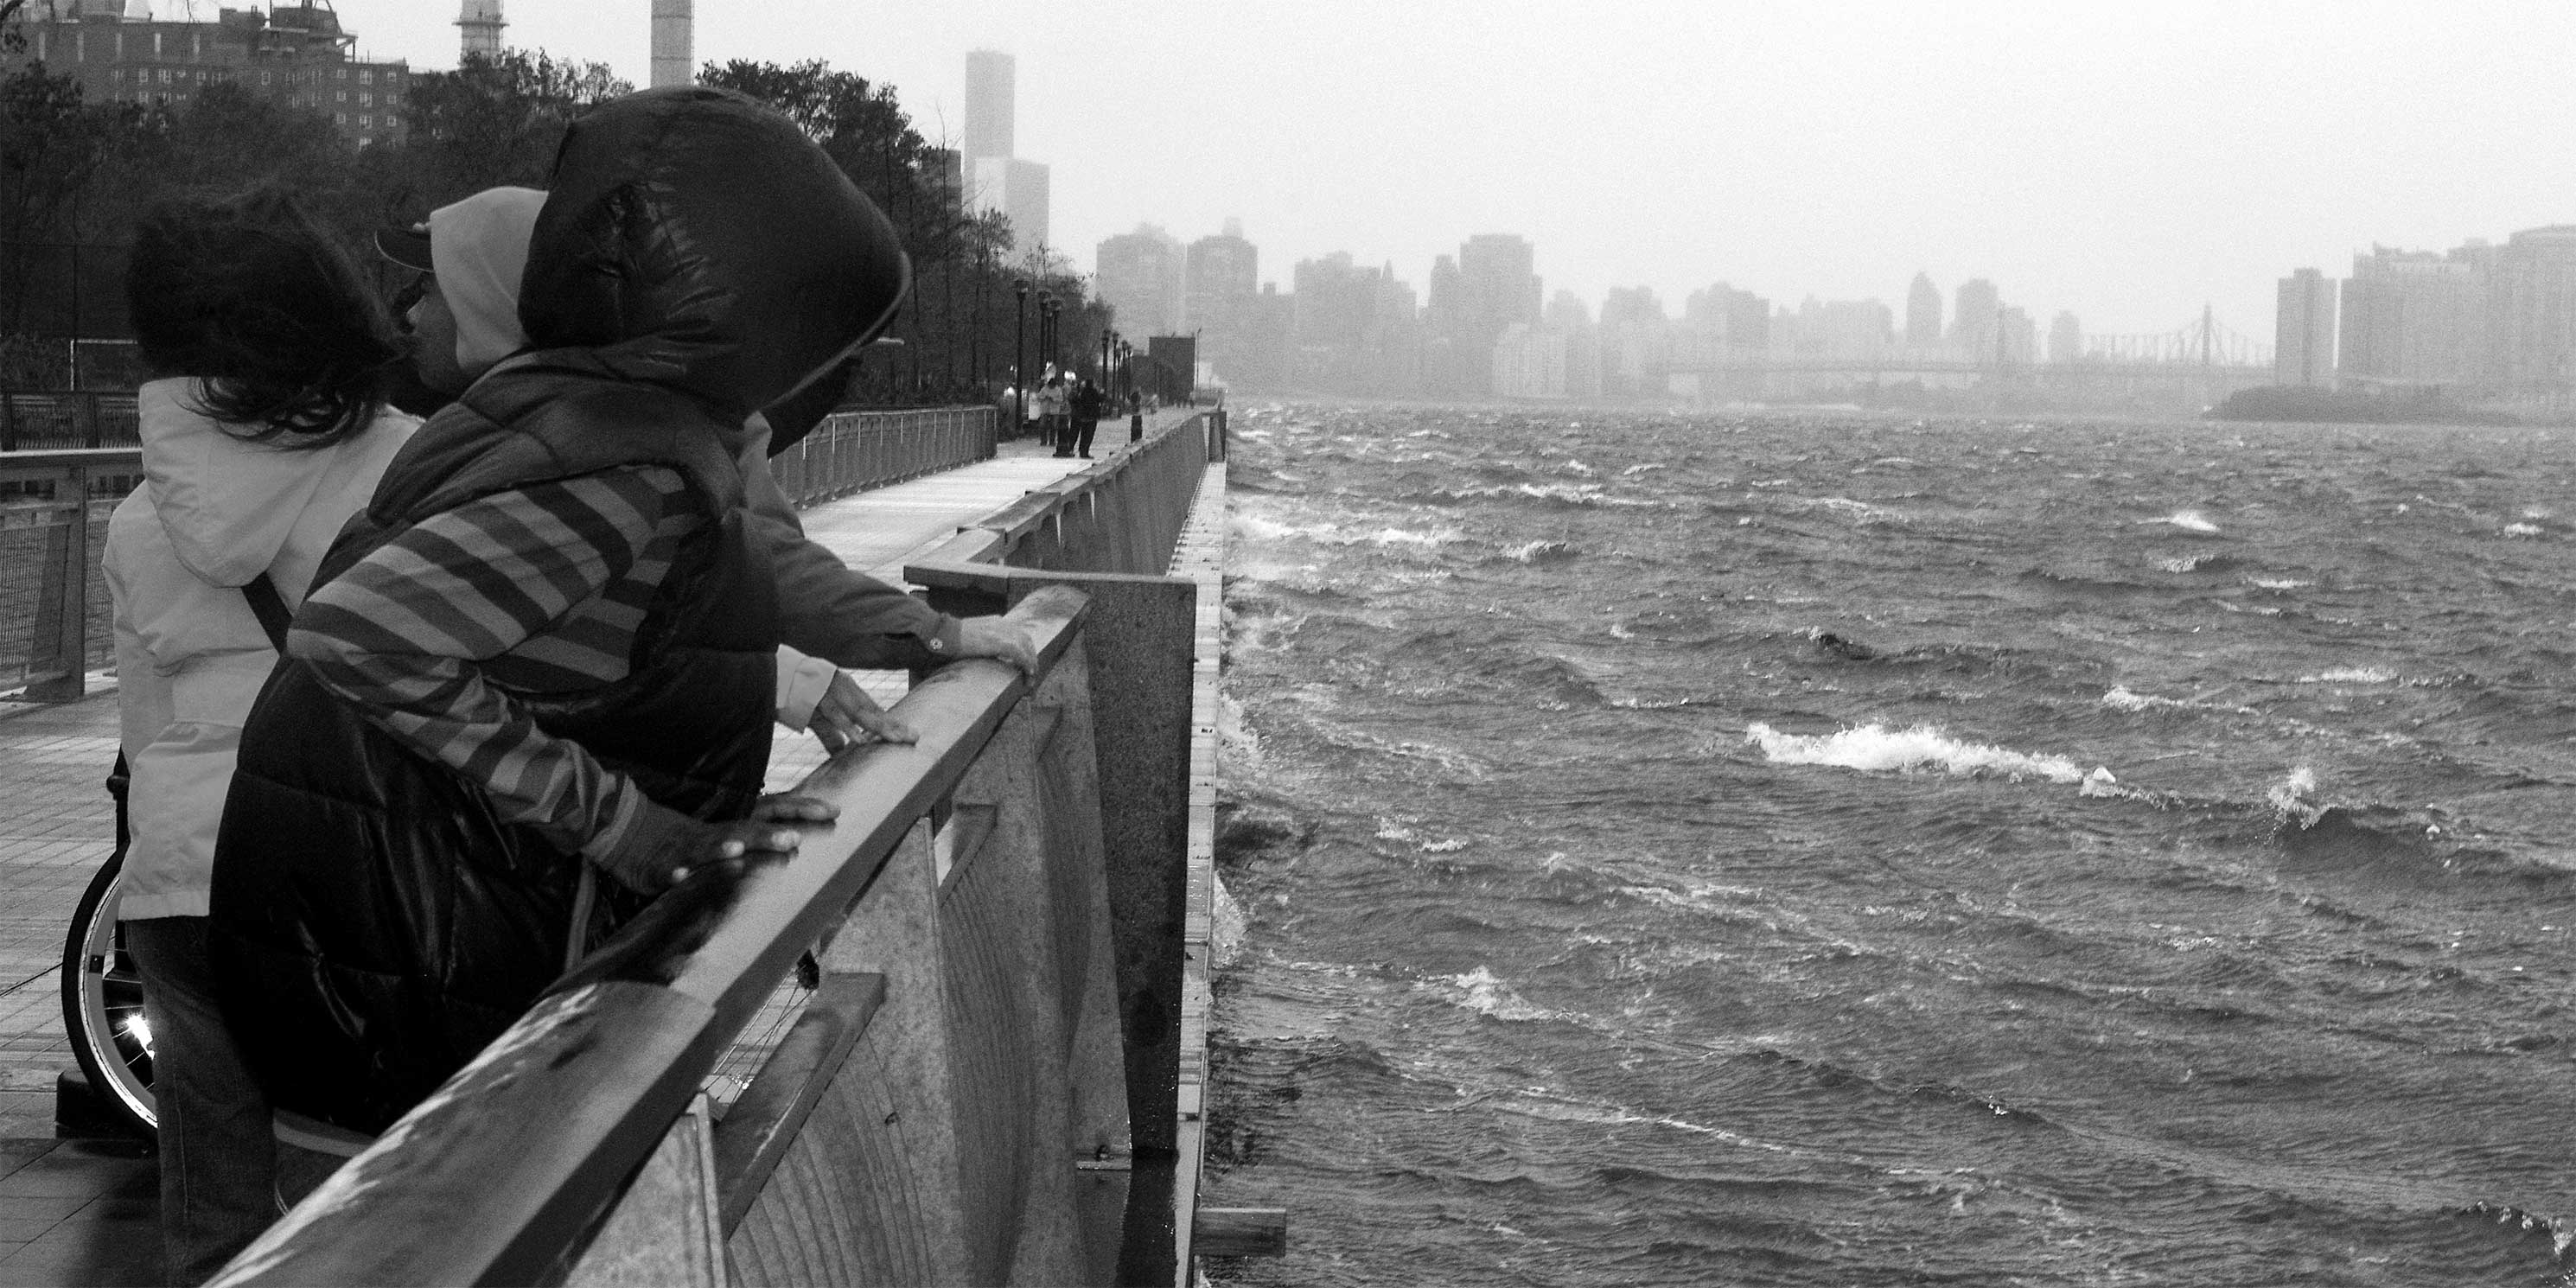 The East River rising as Superstorm Sandy approaches Manhattan. Photo: Wikimedia Commons, David Shankbone.